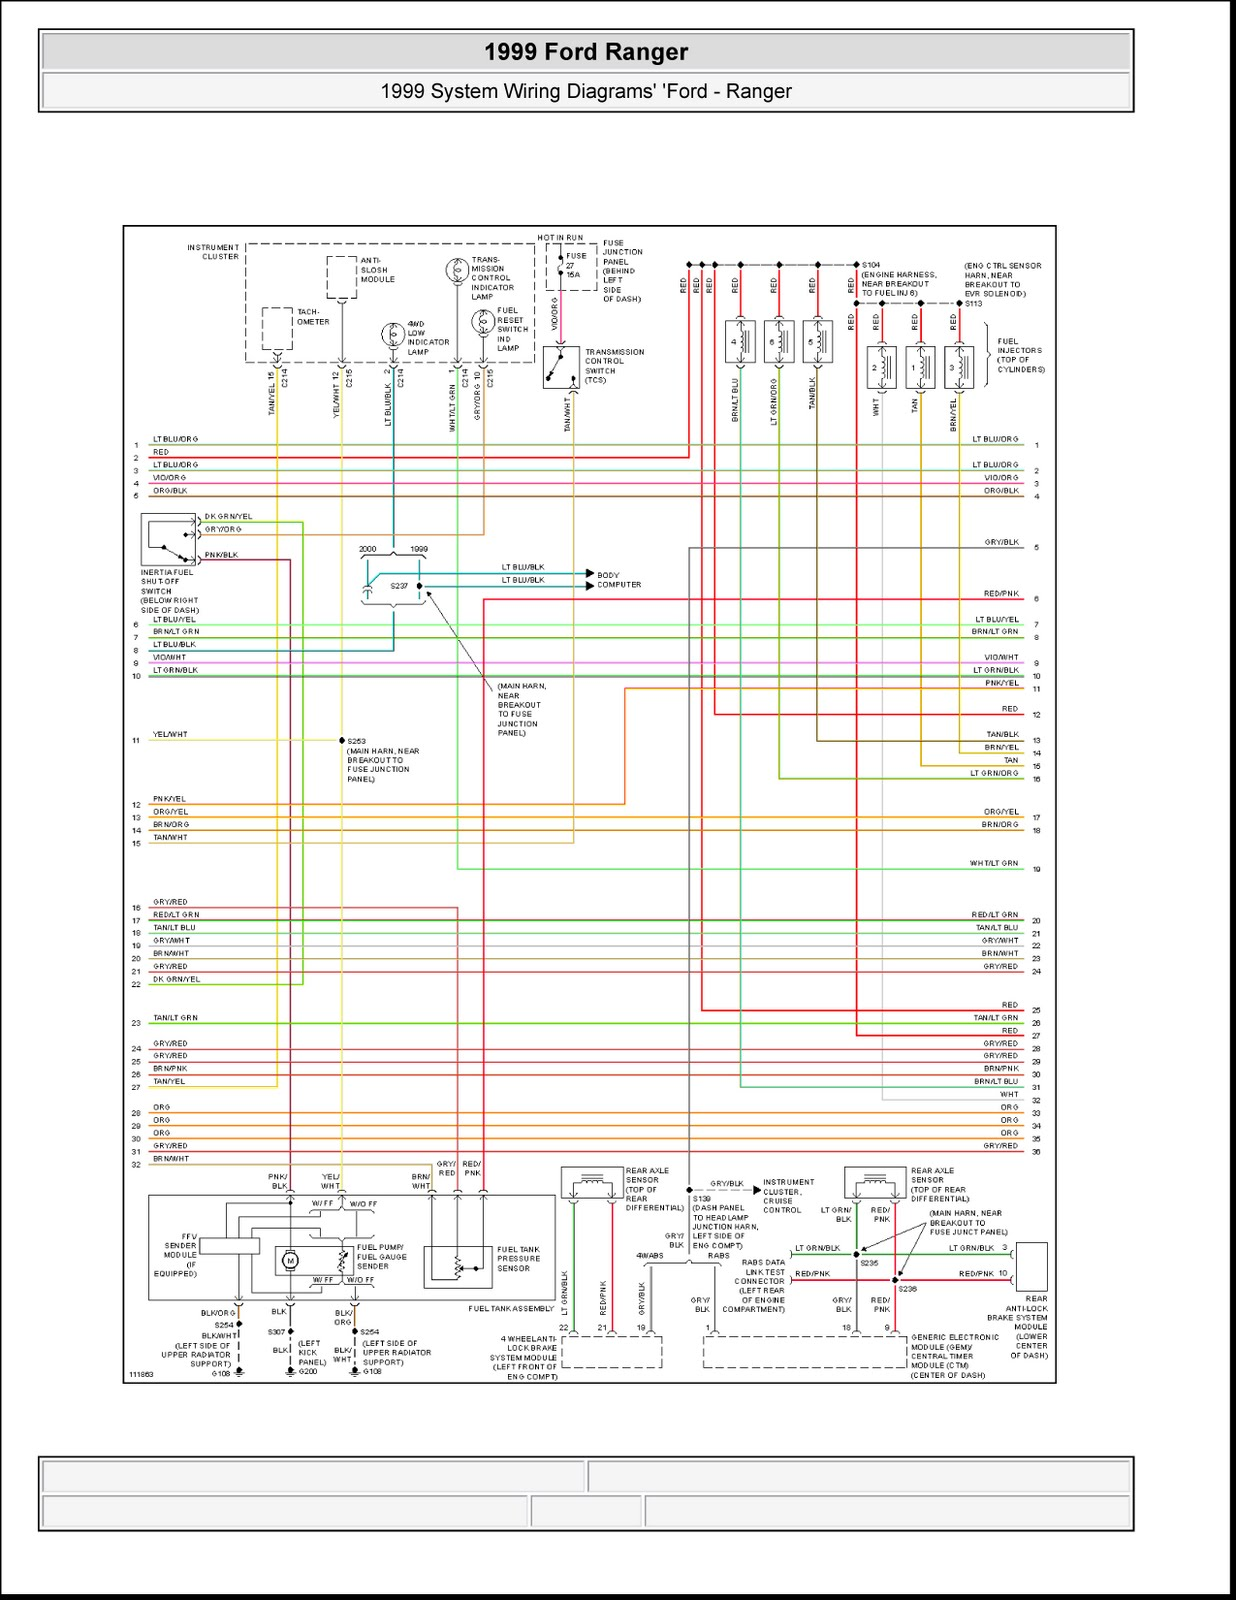 1999 ford ranger system wiring diagrams 4 images ford ranger electrical diagram ford ranger electrical diagram [ 1236 x 1600 Pixel ]